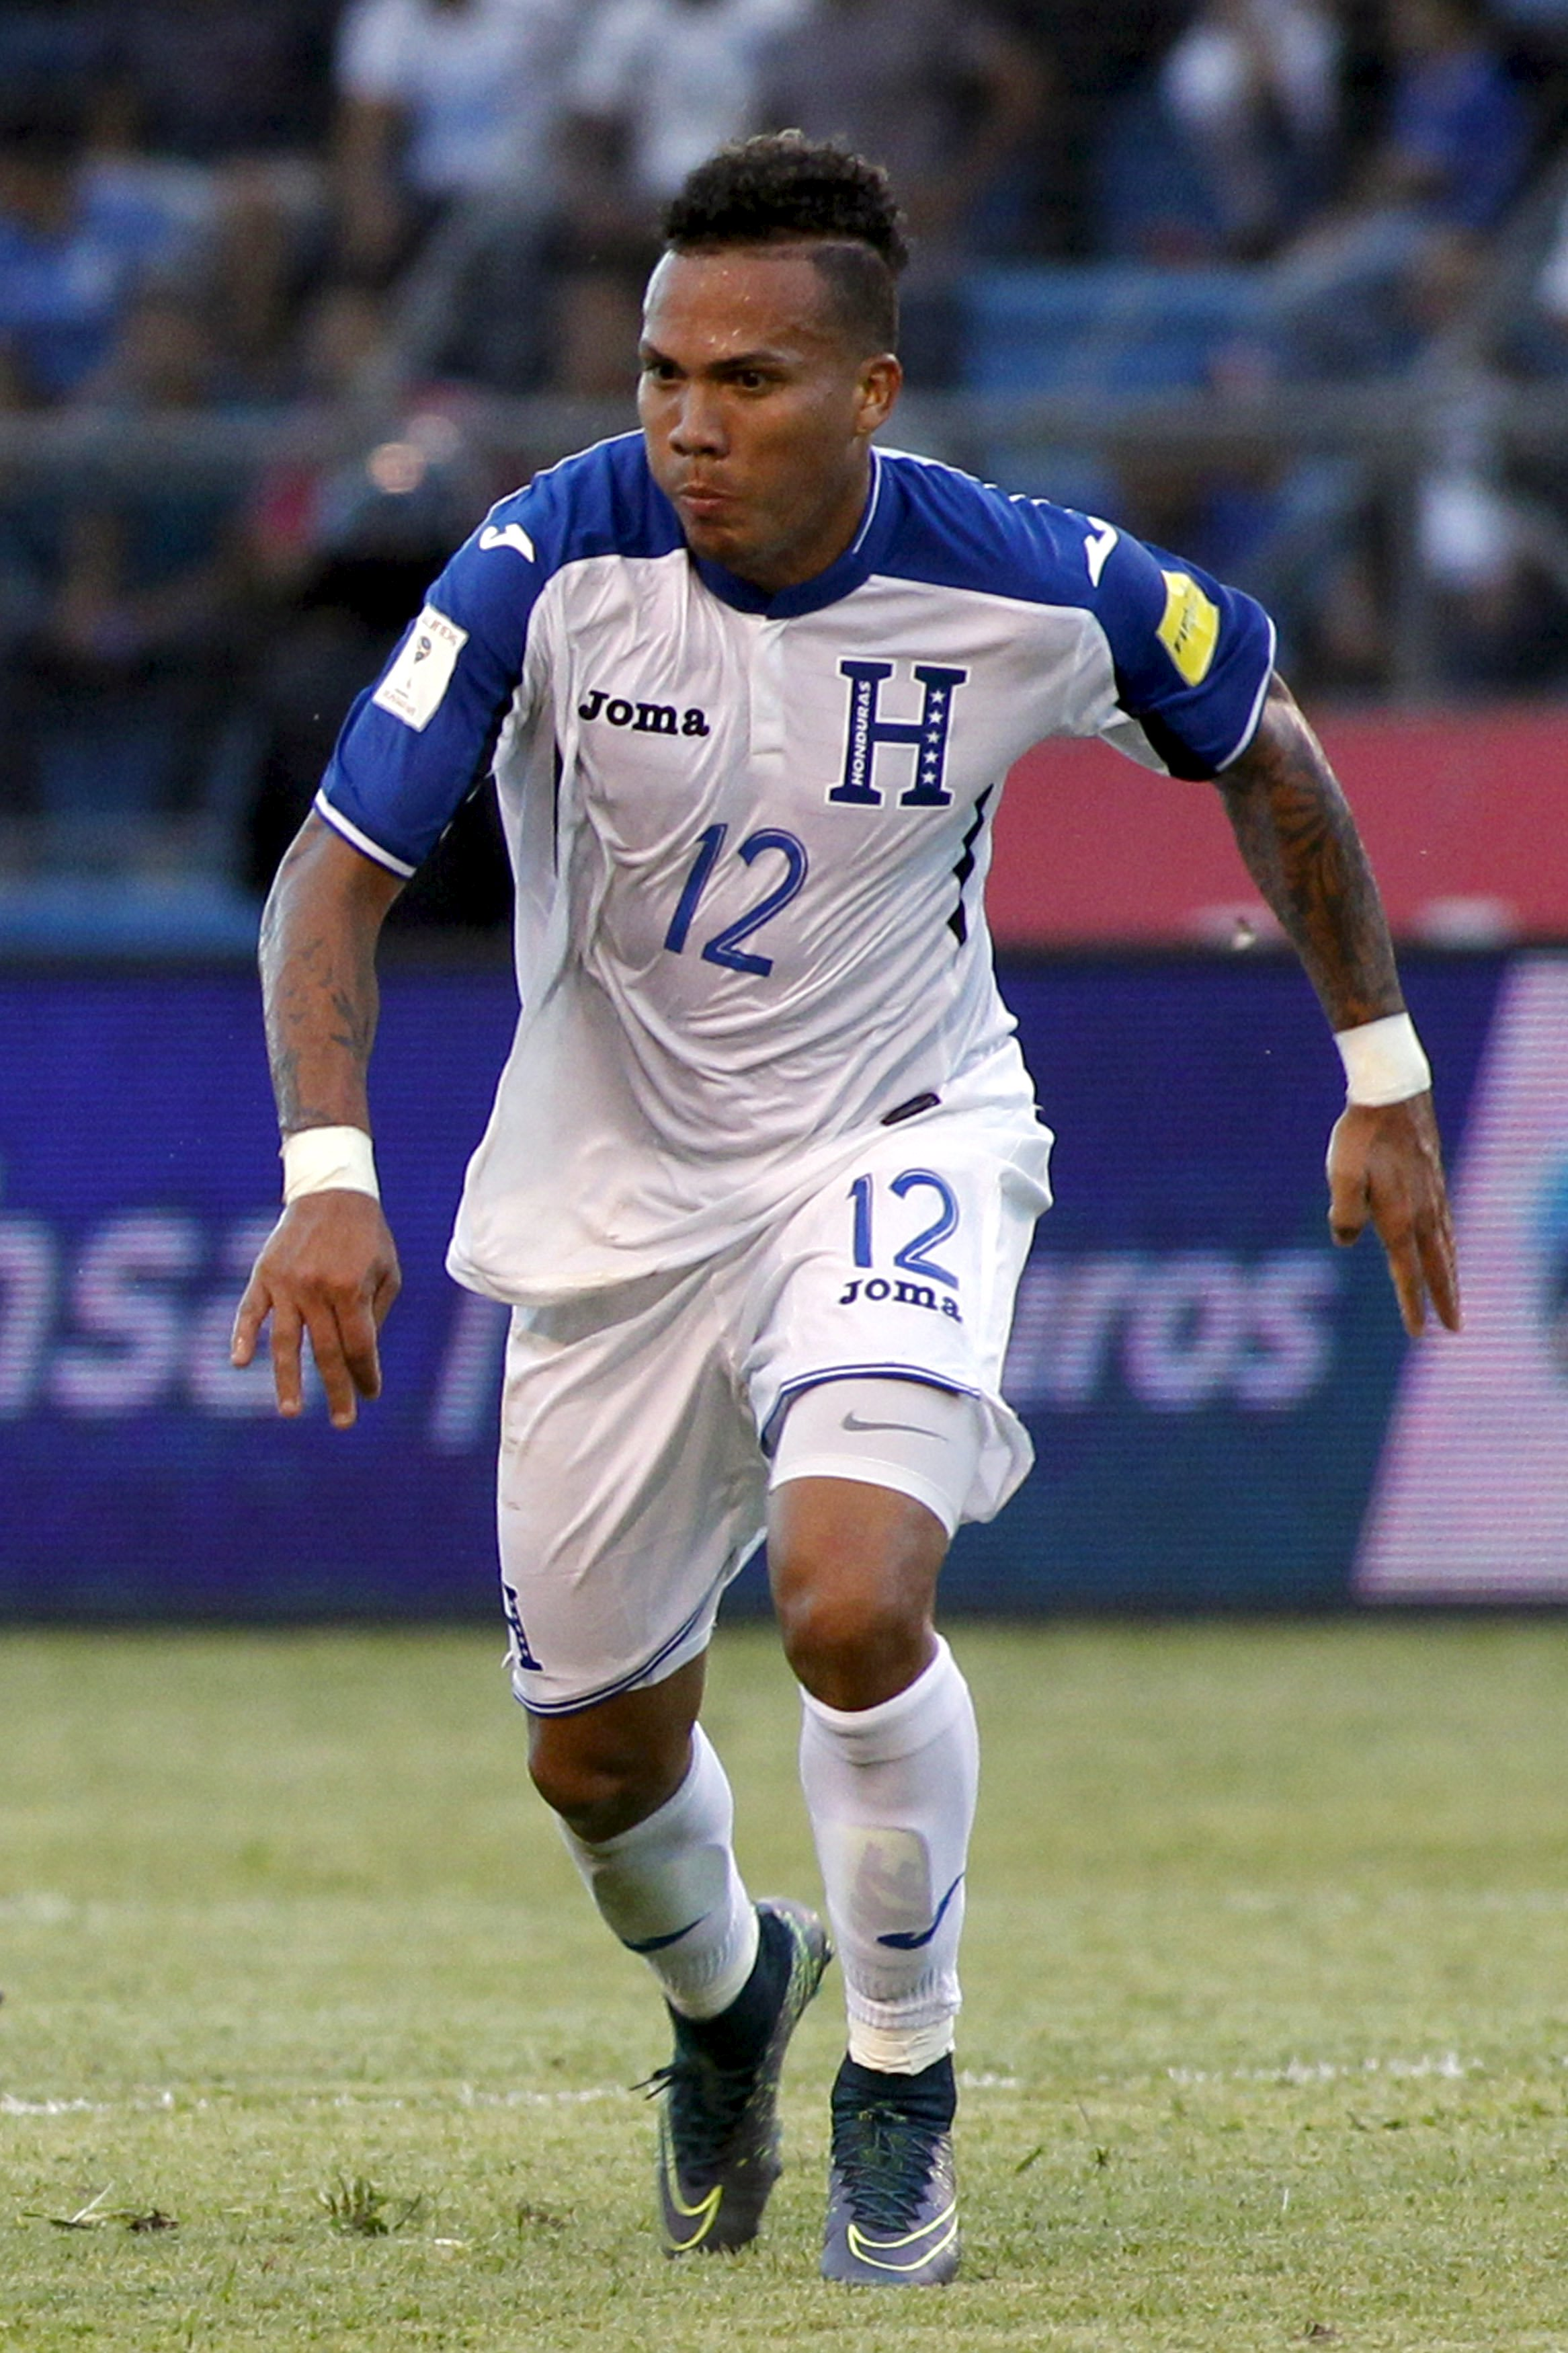 Arnold Peralta of Honduras is seen during their 2018 World Cup qualifying soccer match against Mexico at Olimpico stadium in San Pedro Sula, Honduras, in this November 17, 2015. Photo: Reuters